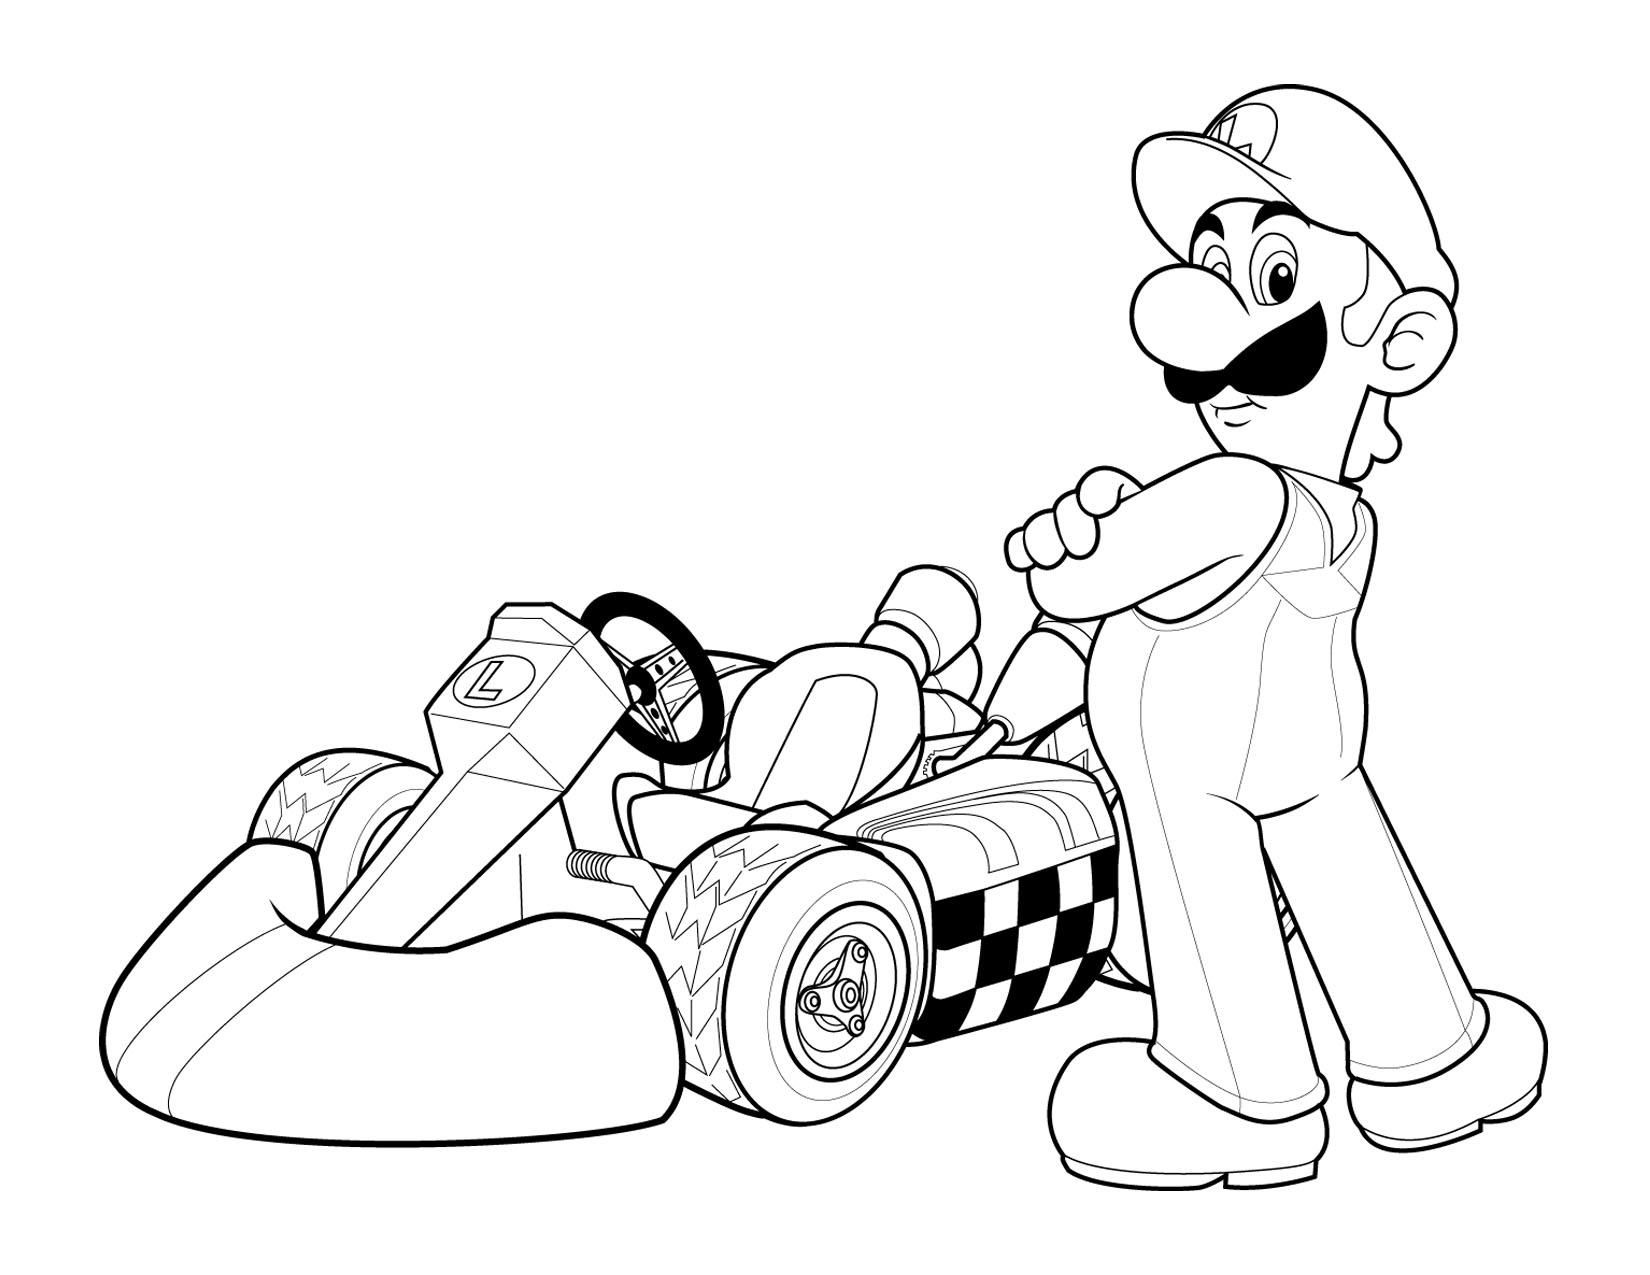 shy guy super mario coloring pages - Clip Art Library   1275x1650